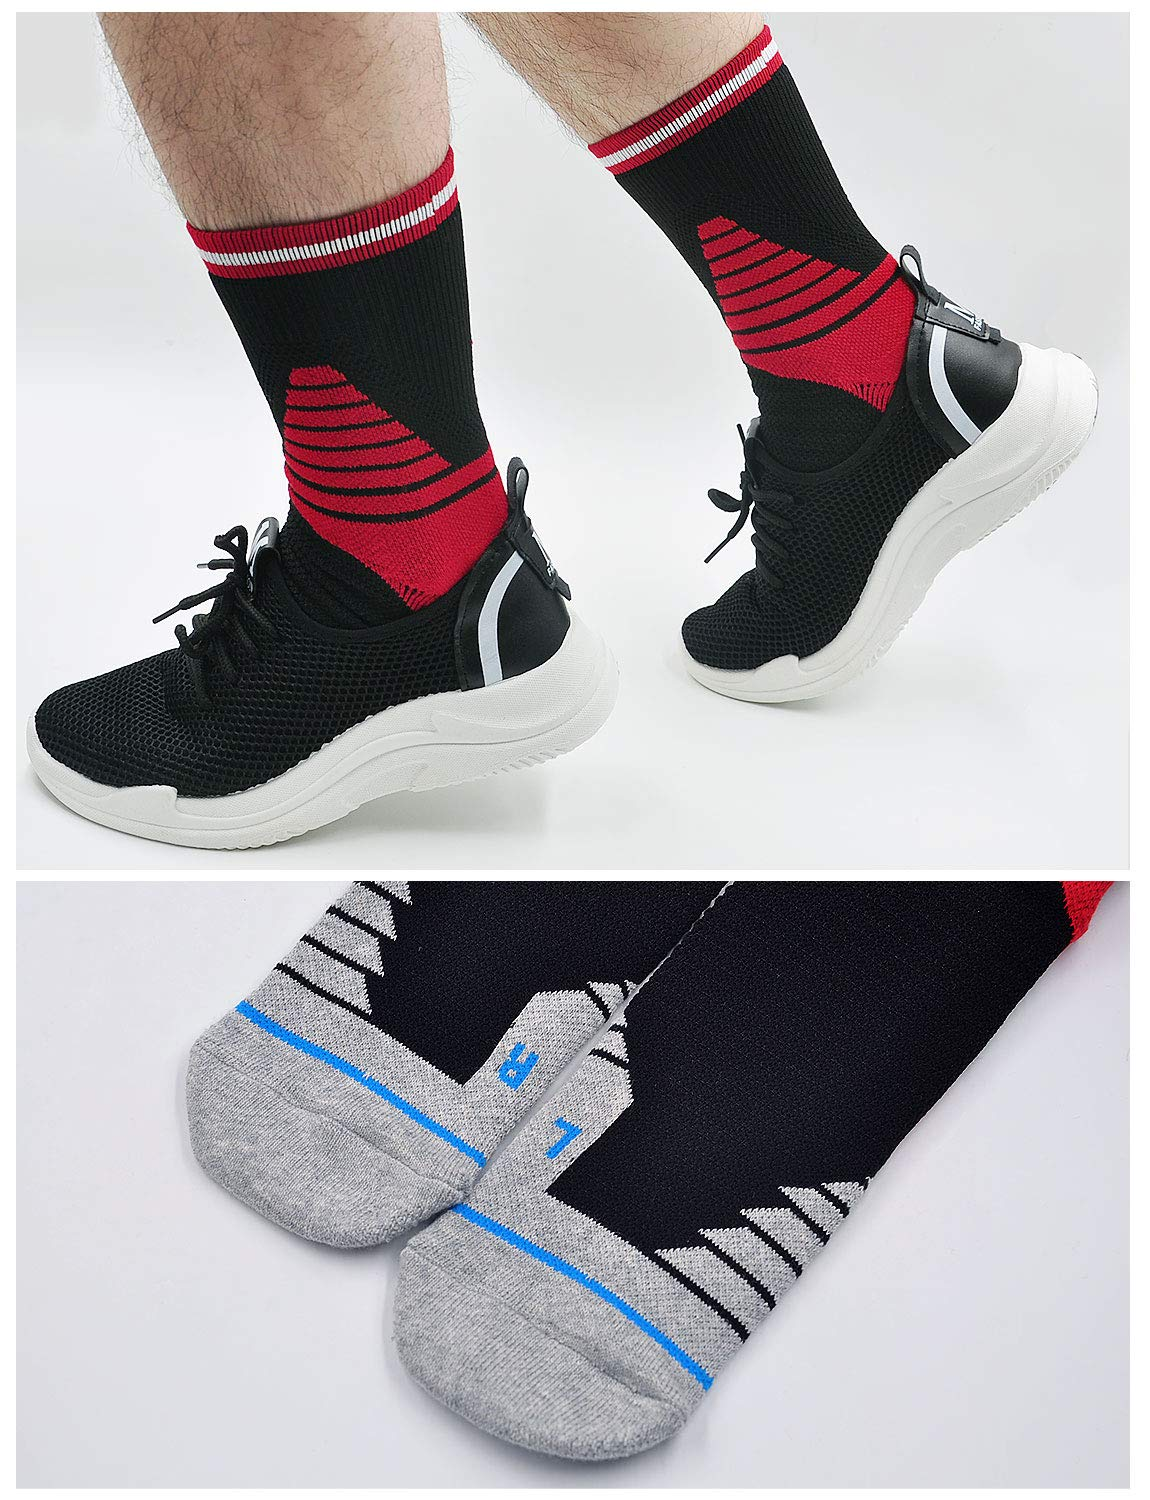 Compression Socks for Men Athletic Sport Fit for Plantar Fasciitis Running Arch Support Ankle Socks Boost Stamina 4 Pack